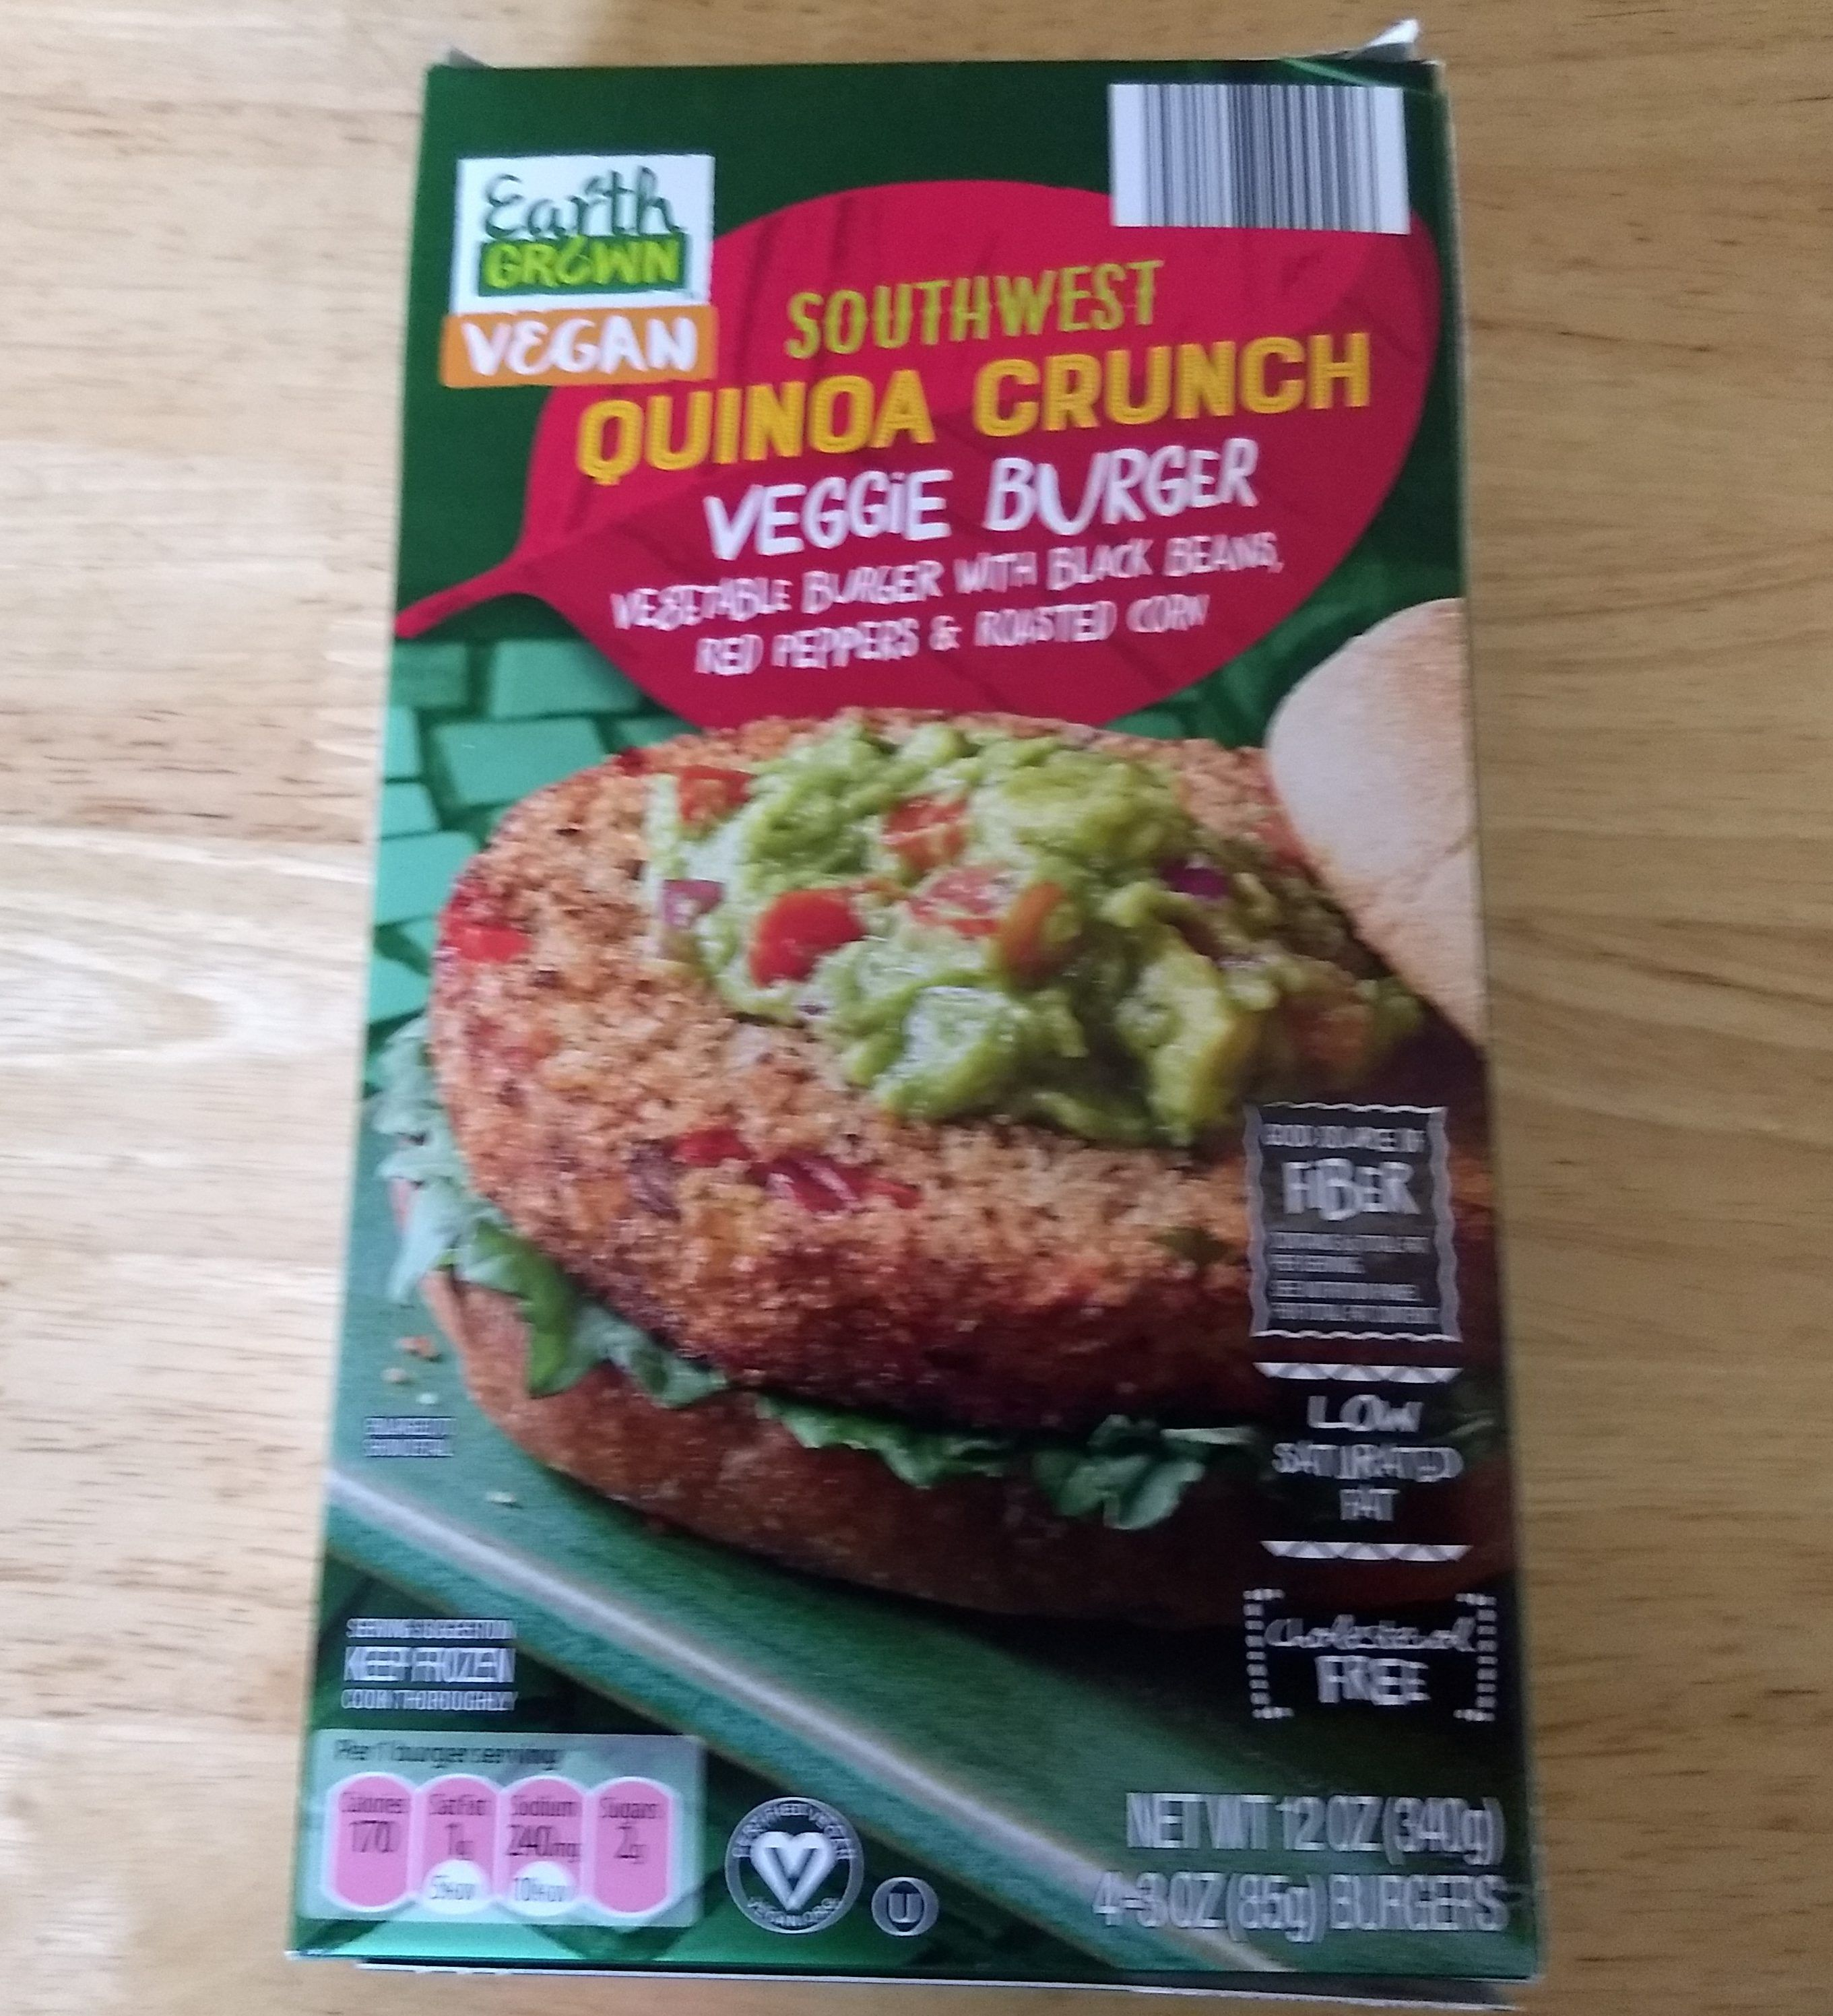 Earth Grown Vegan Southwest Quinoa Crunch Veggie Burger Healthy